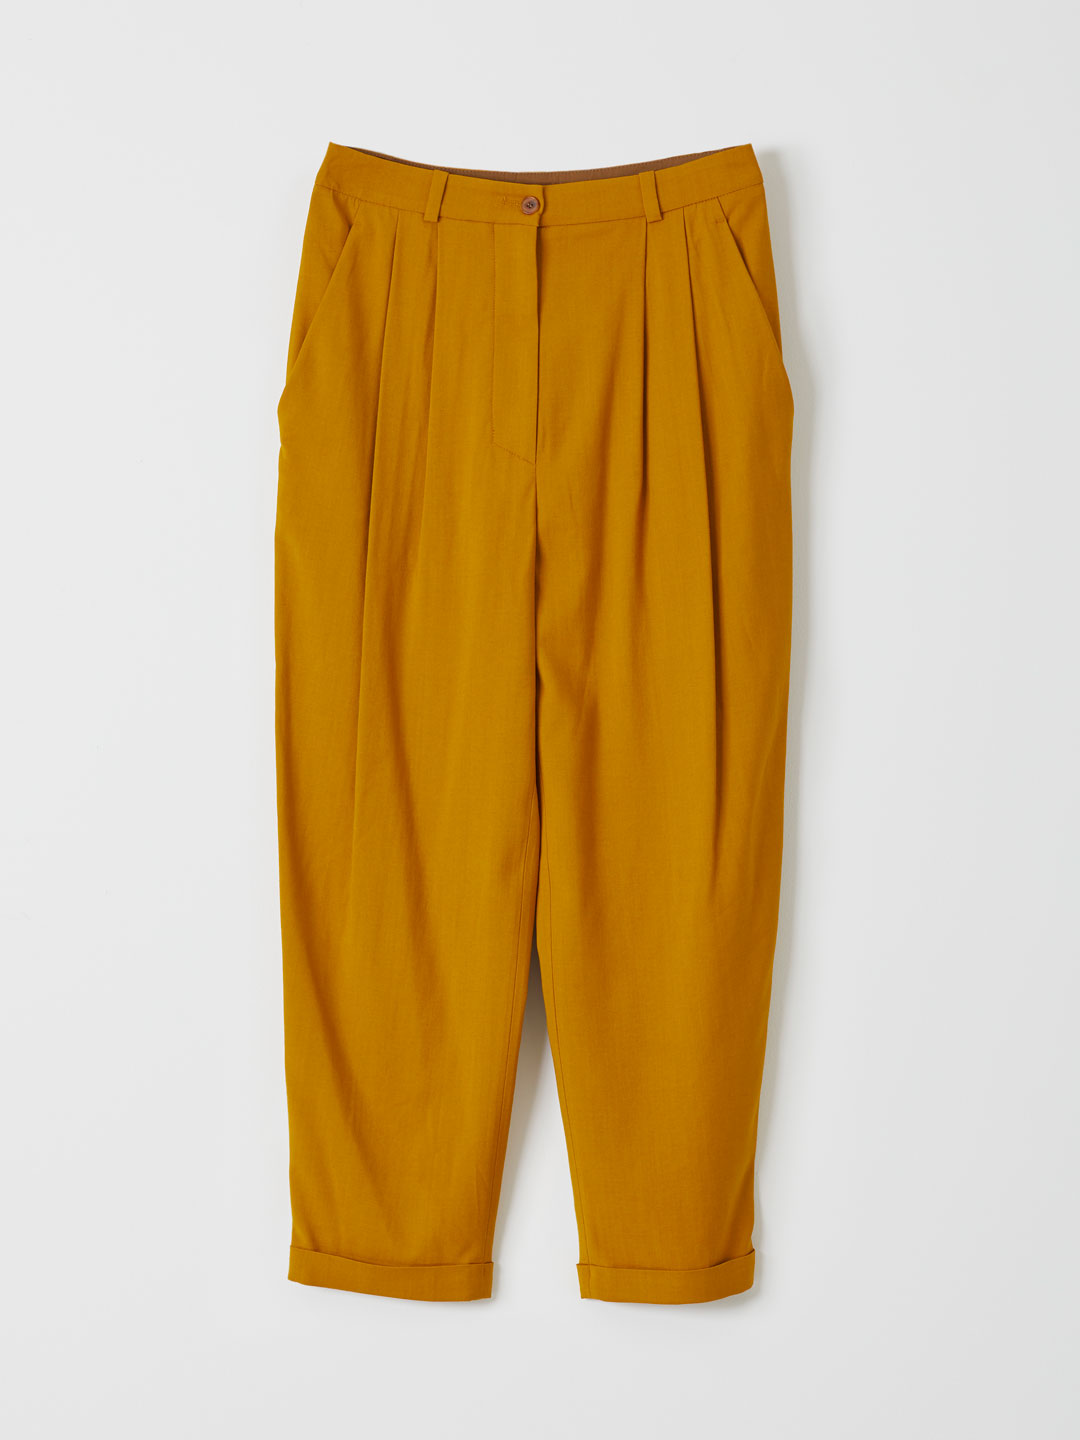 Viscose Wool Tucked Pants - Yellow